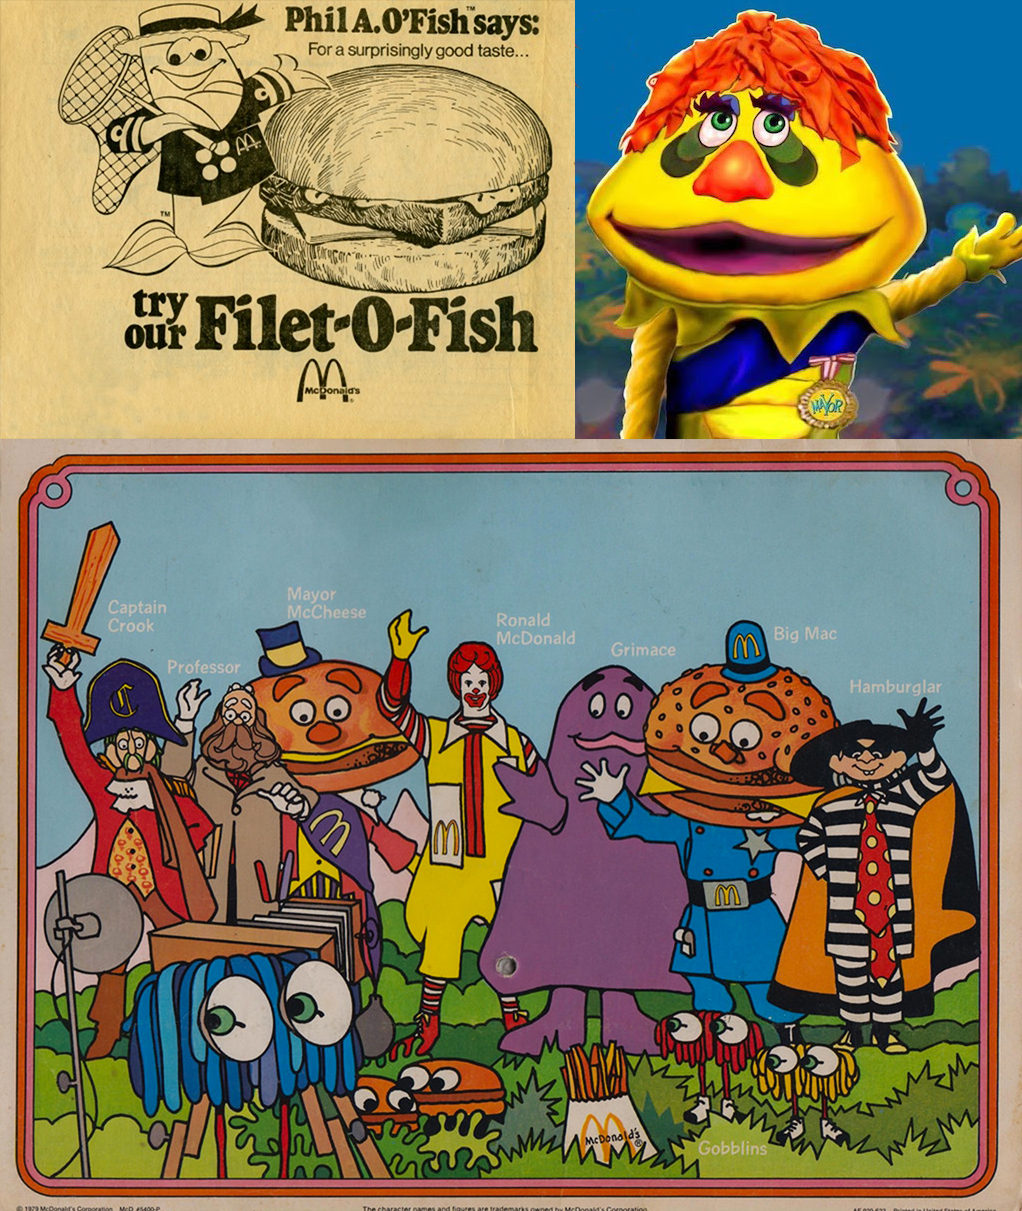 Clockwise: A Phil A. O'Fish ad from 1976, H.R. Pufnstuf, and a vintage placemat featuring Captain Crook.